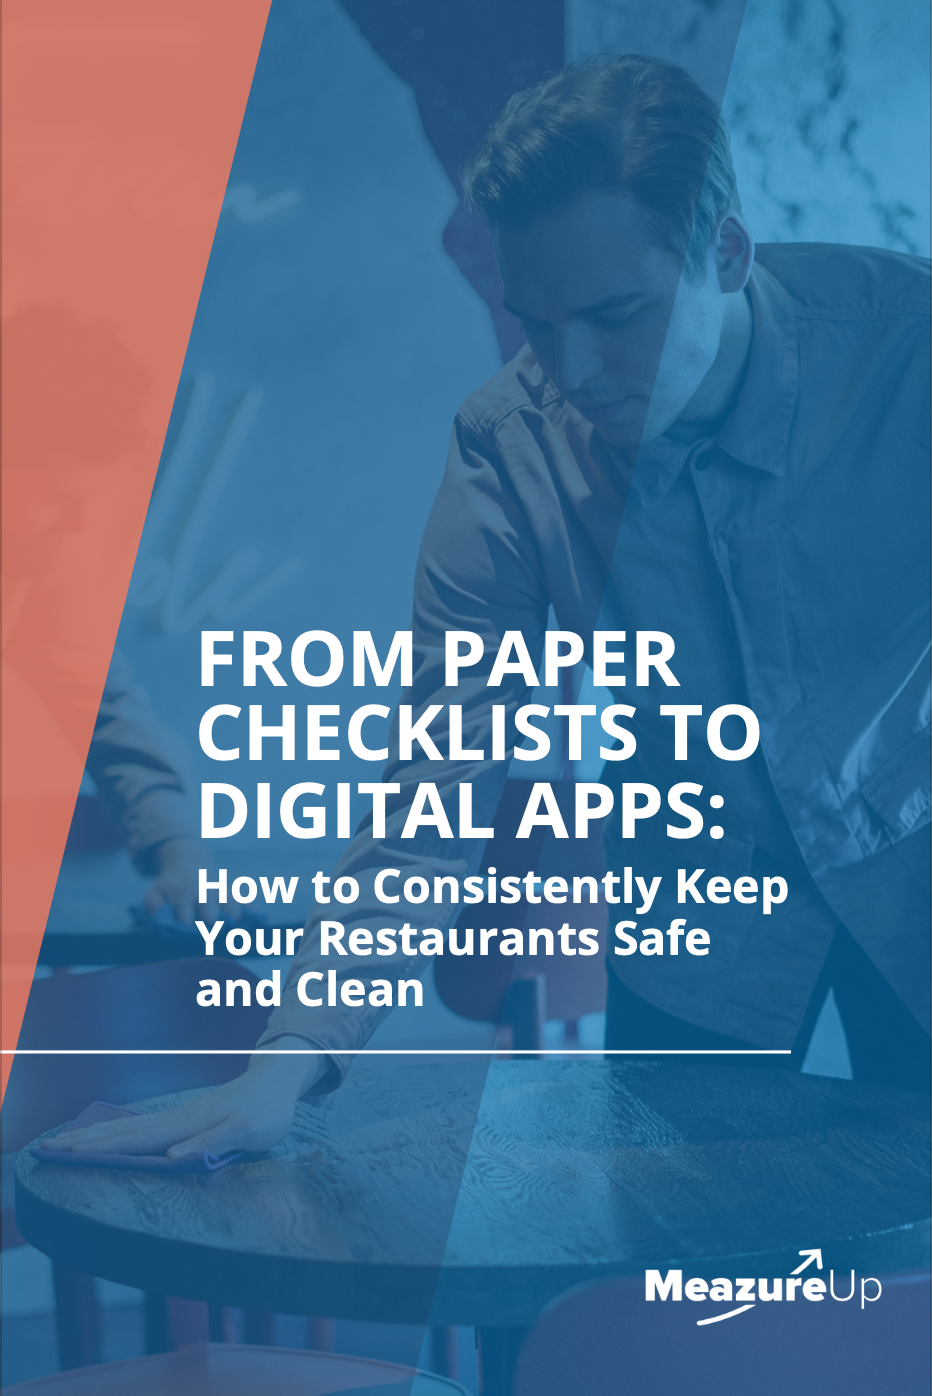 From Paper Checklists to Digital Apps: How to Consistently Keep your Restaurant Safe and Clean